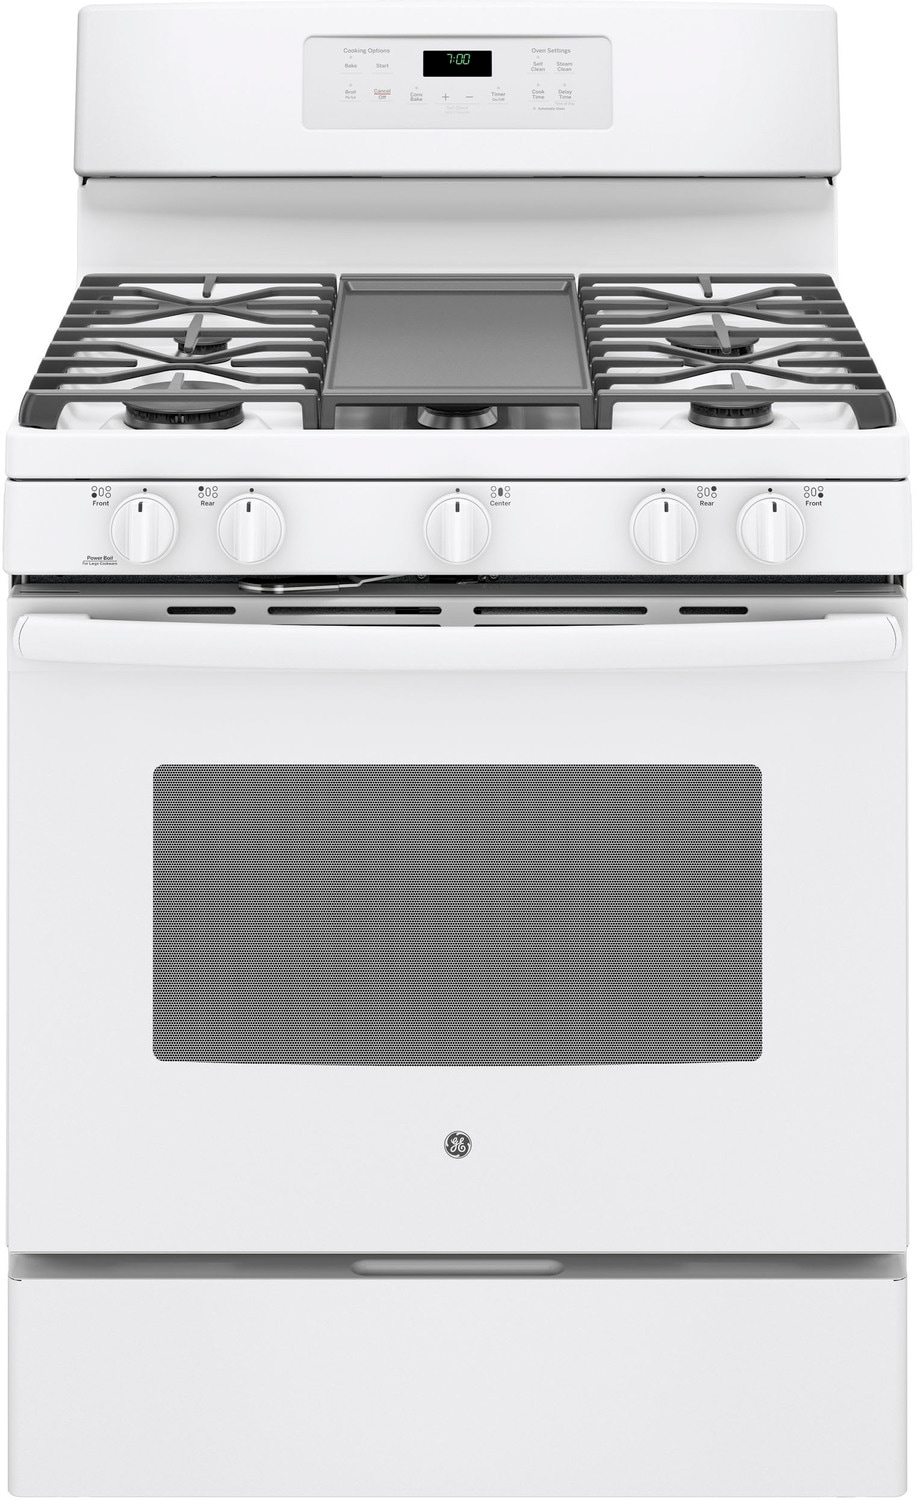 Cooking Products - GE White Freestanding Gas Convection Range (5.0 Cu. Ft.) - JCGB700DEJWW